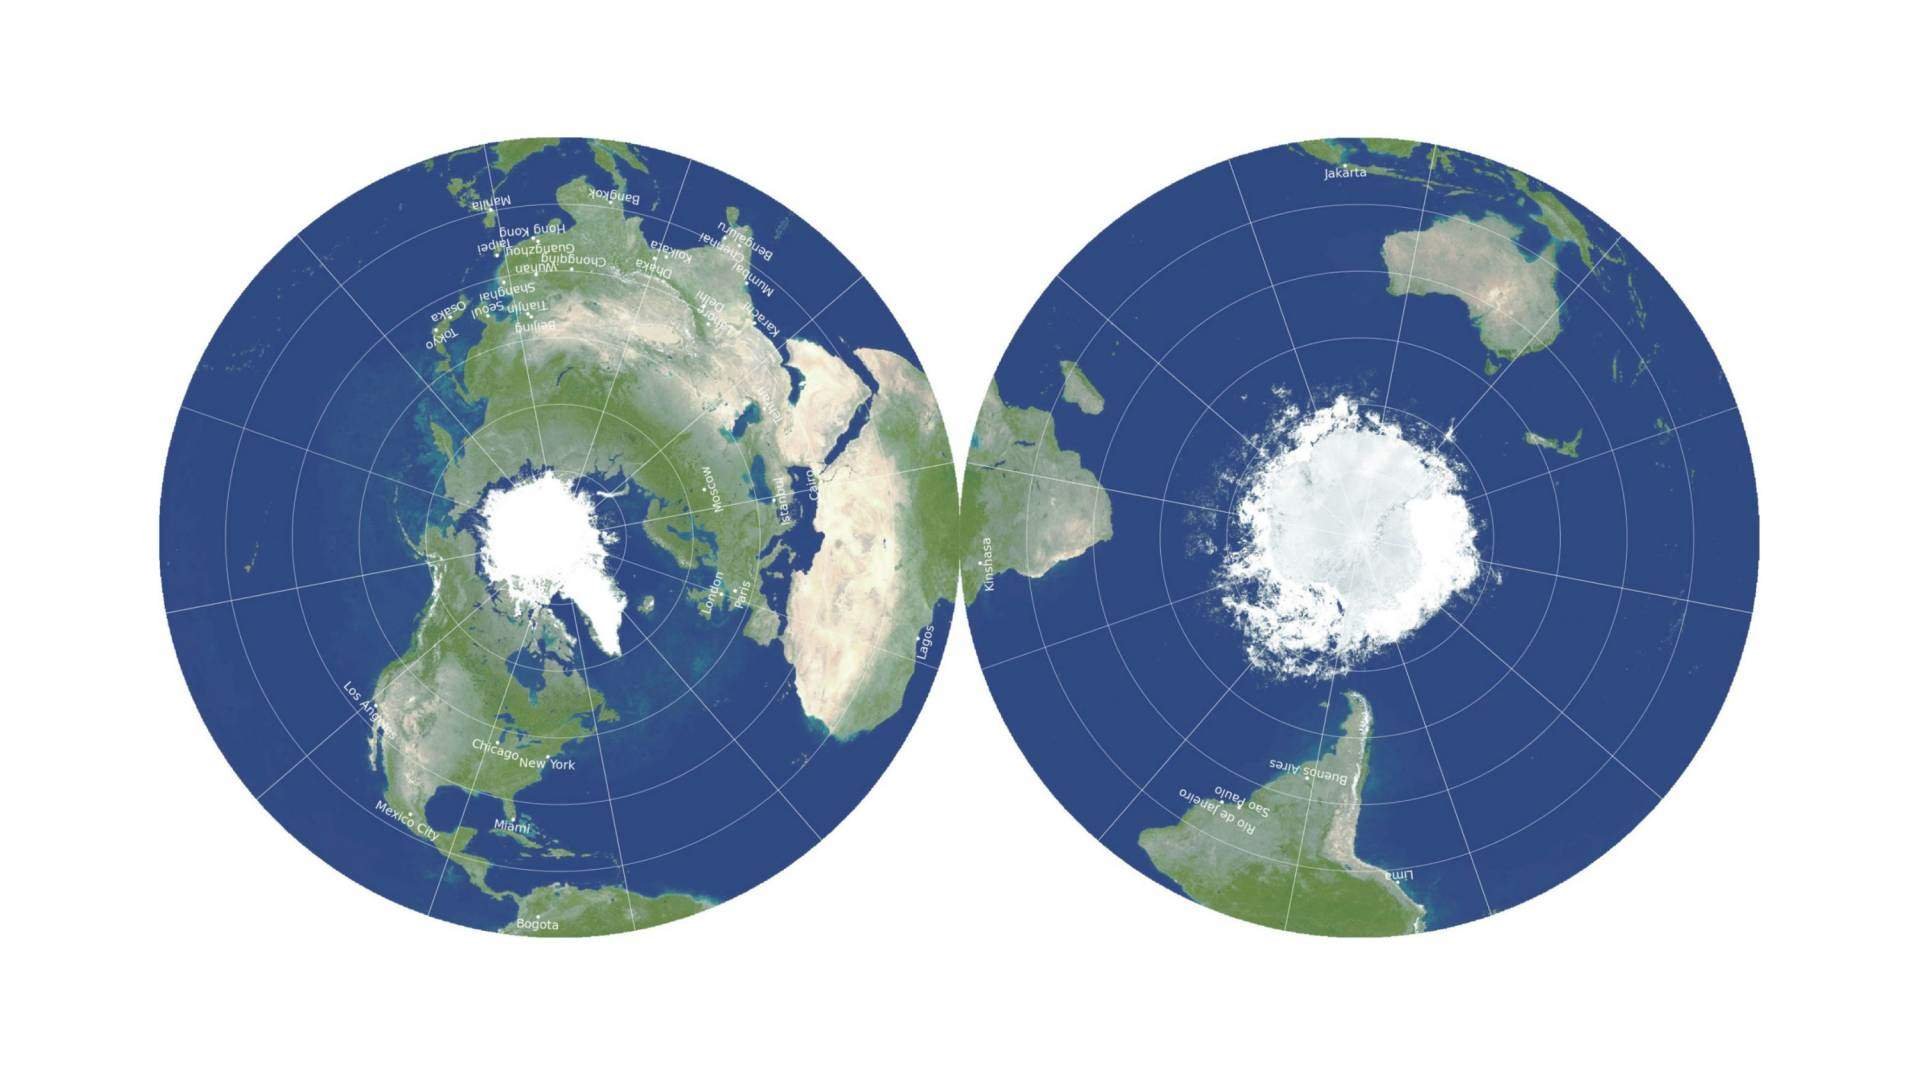 equidistant azimuthal projection